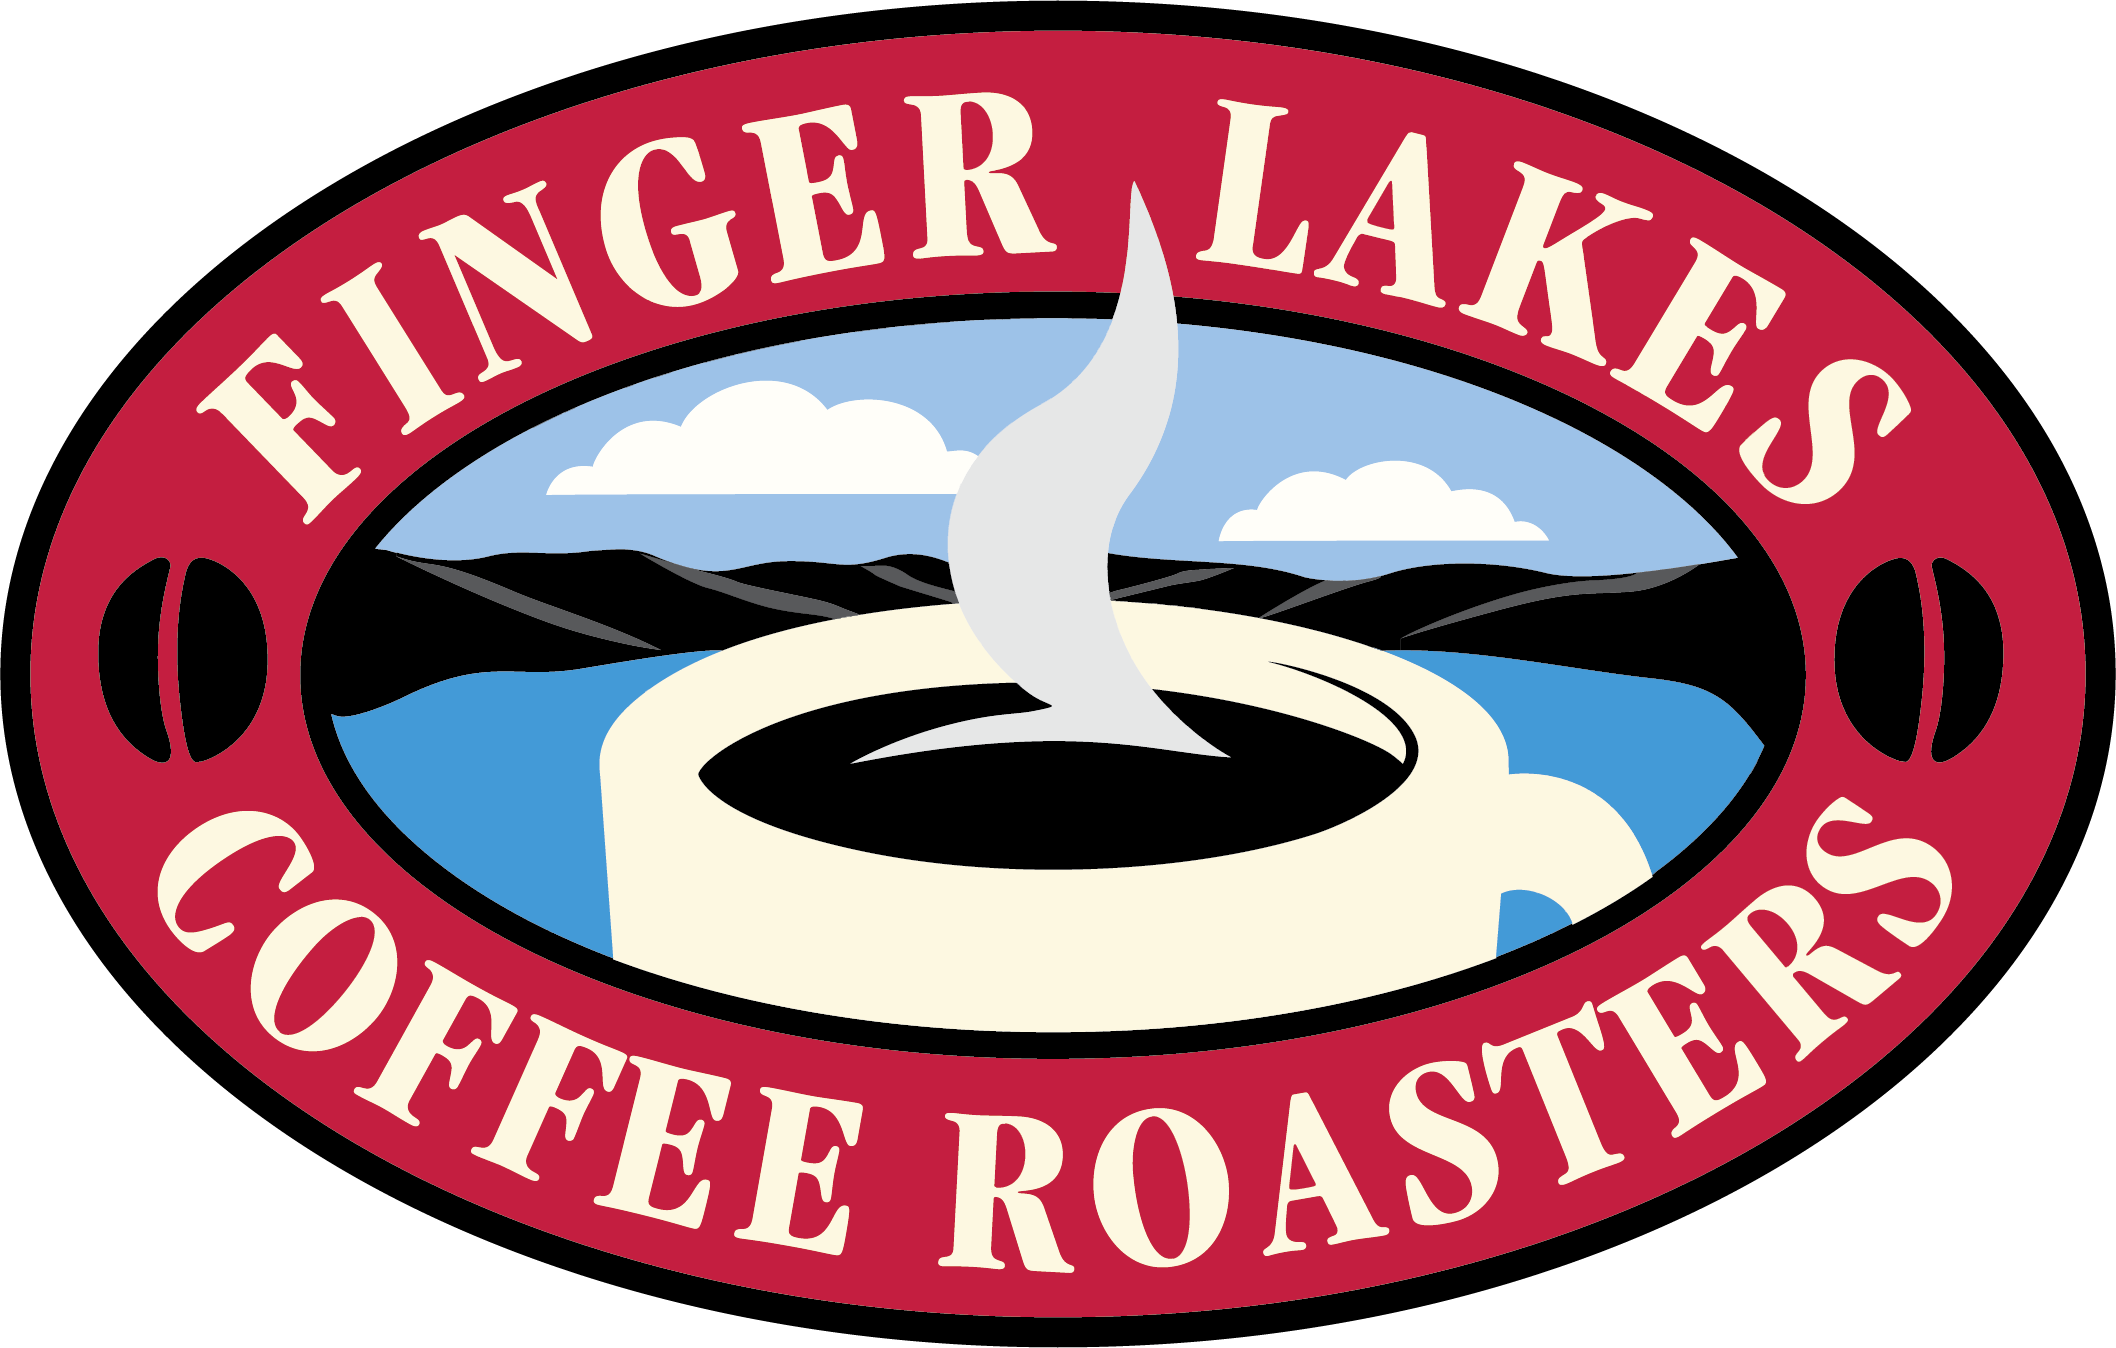 Finger Lakes Coffee Roasters logo